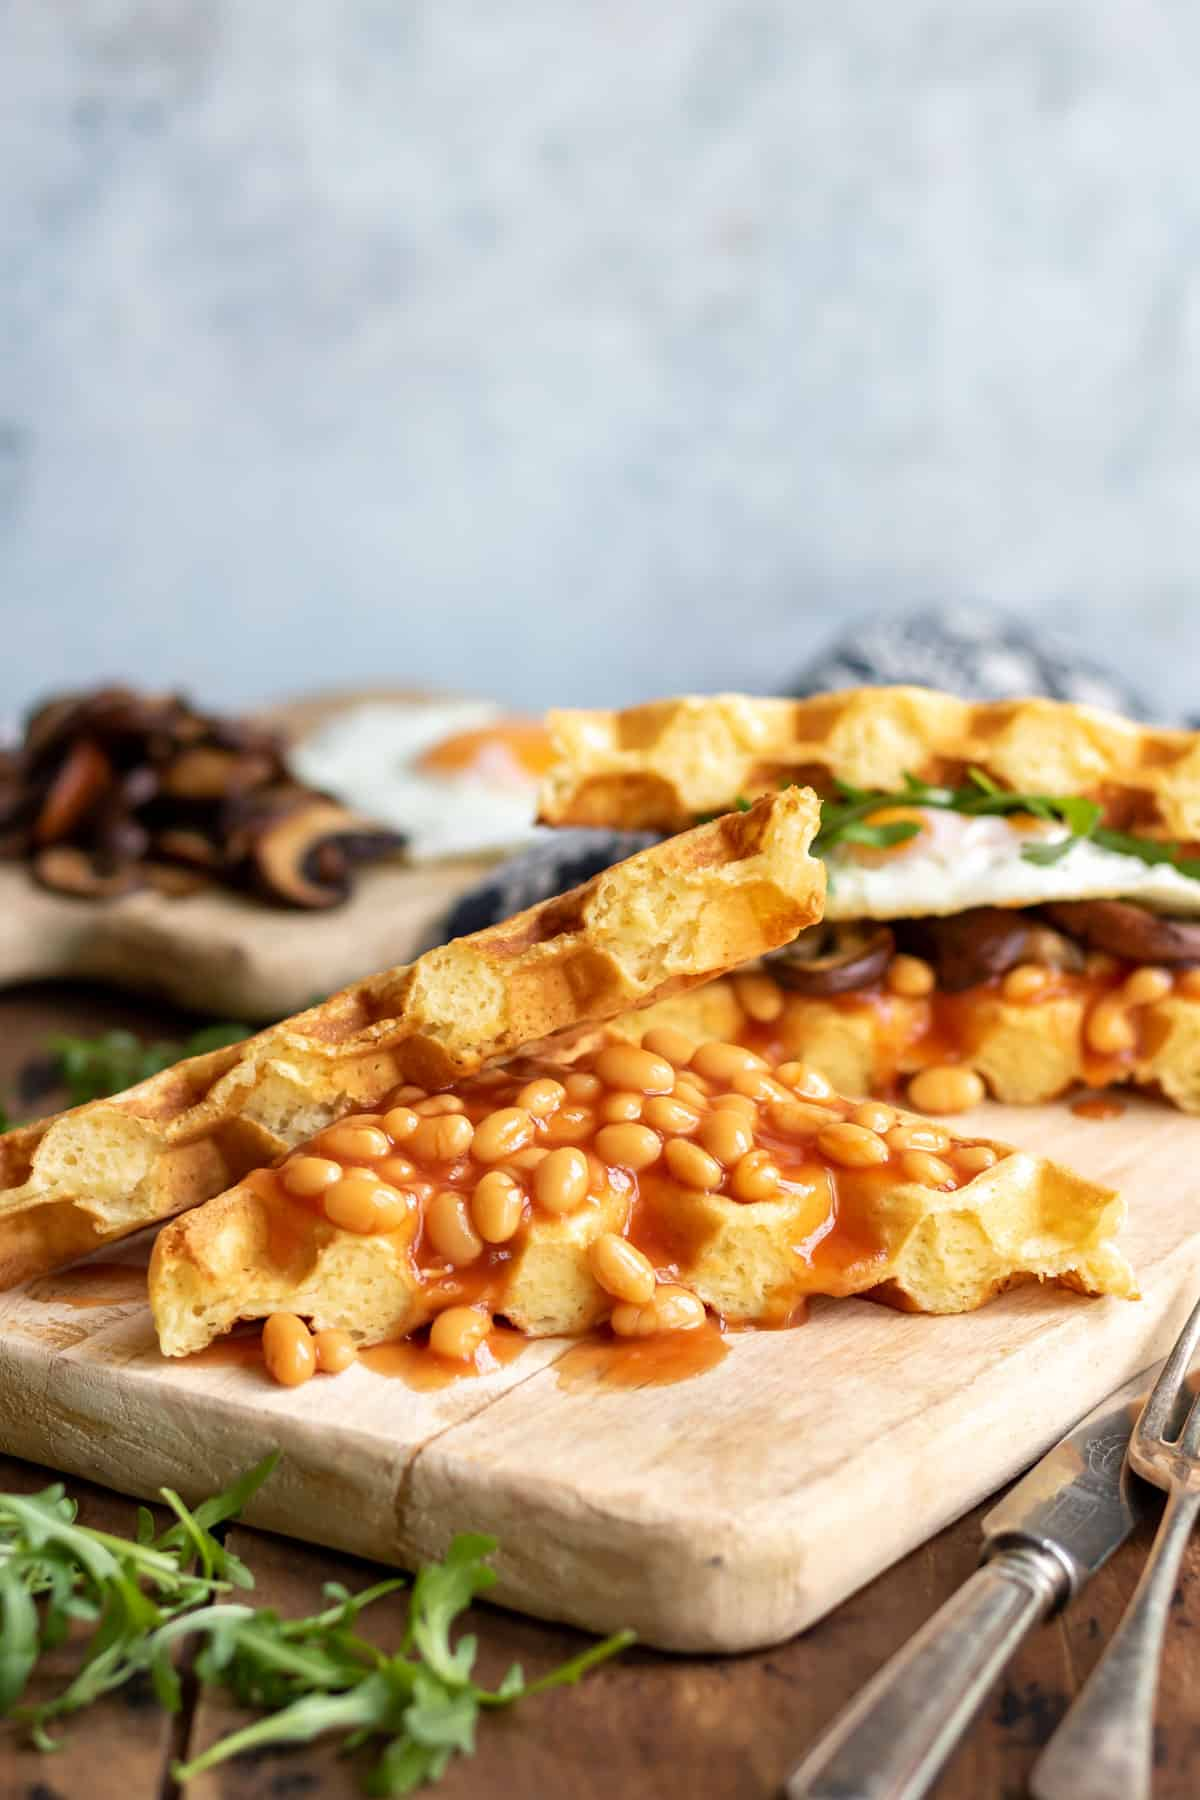 Waffles with beans and eggs.